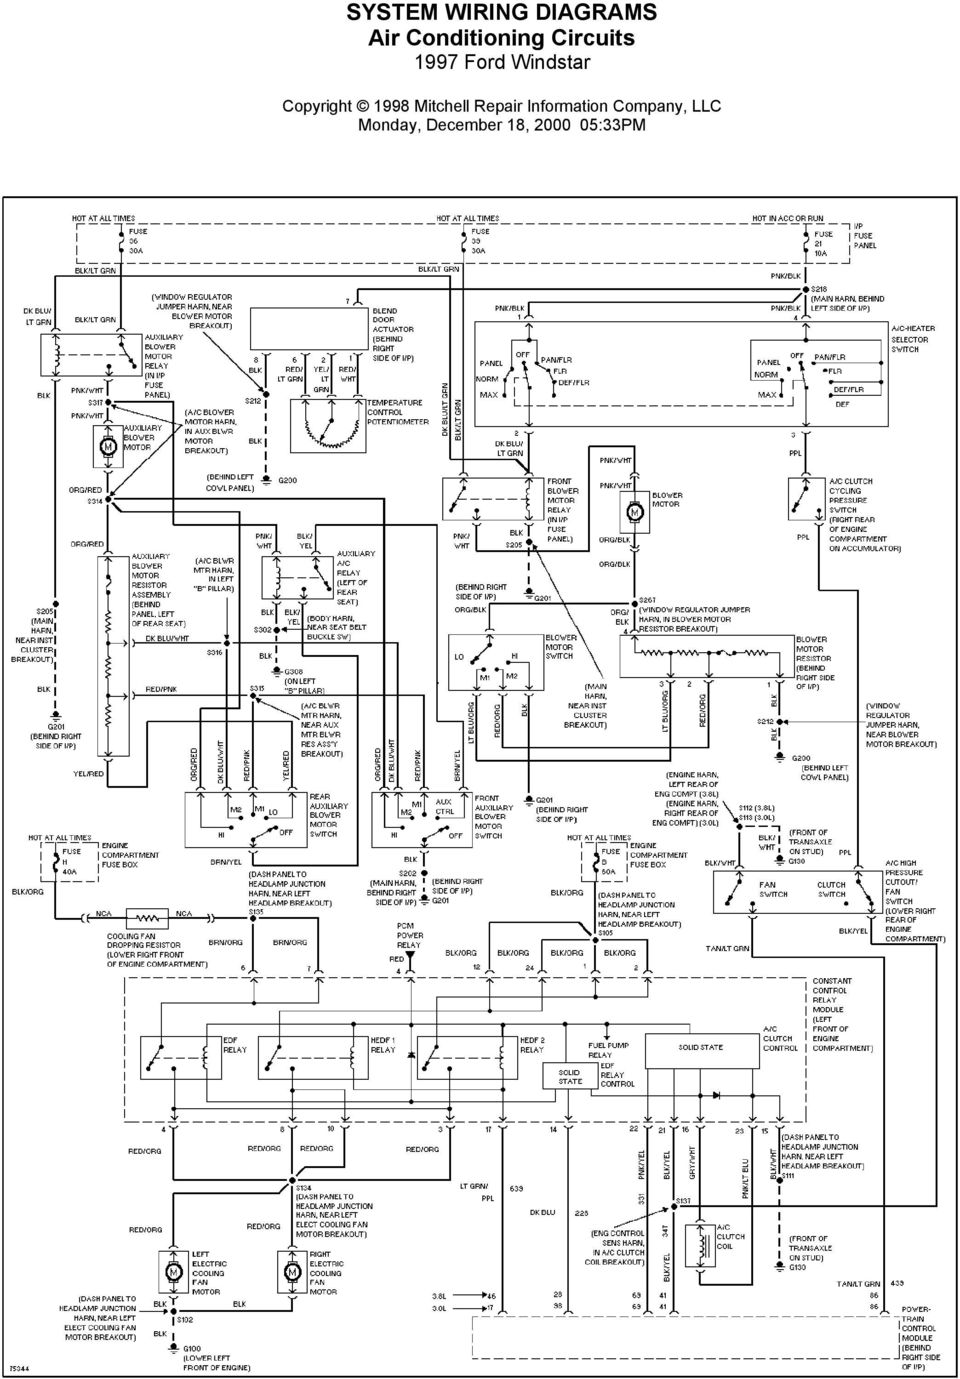 System Wiring Diagrams Air Conditioning Circuits 1997 Ford Windstar 2006 Dodge Sprinter Ac Diagram